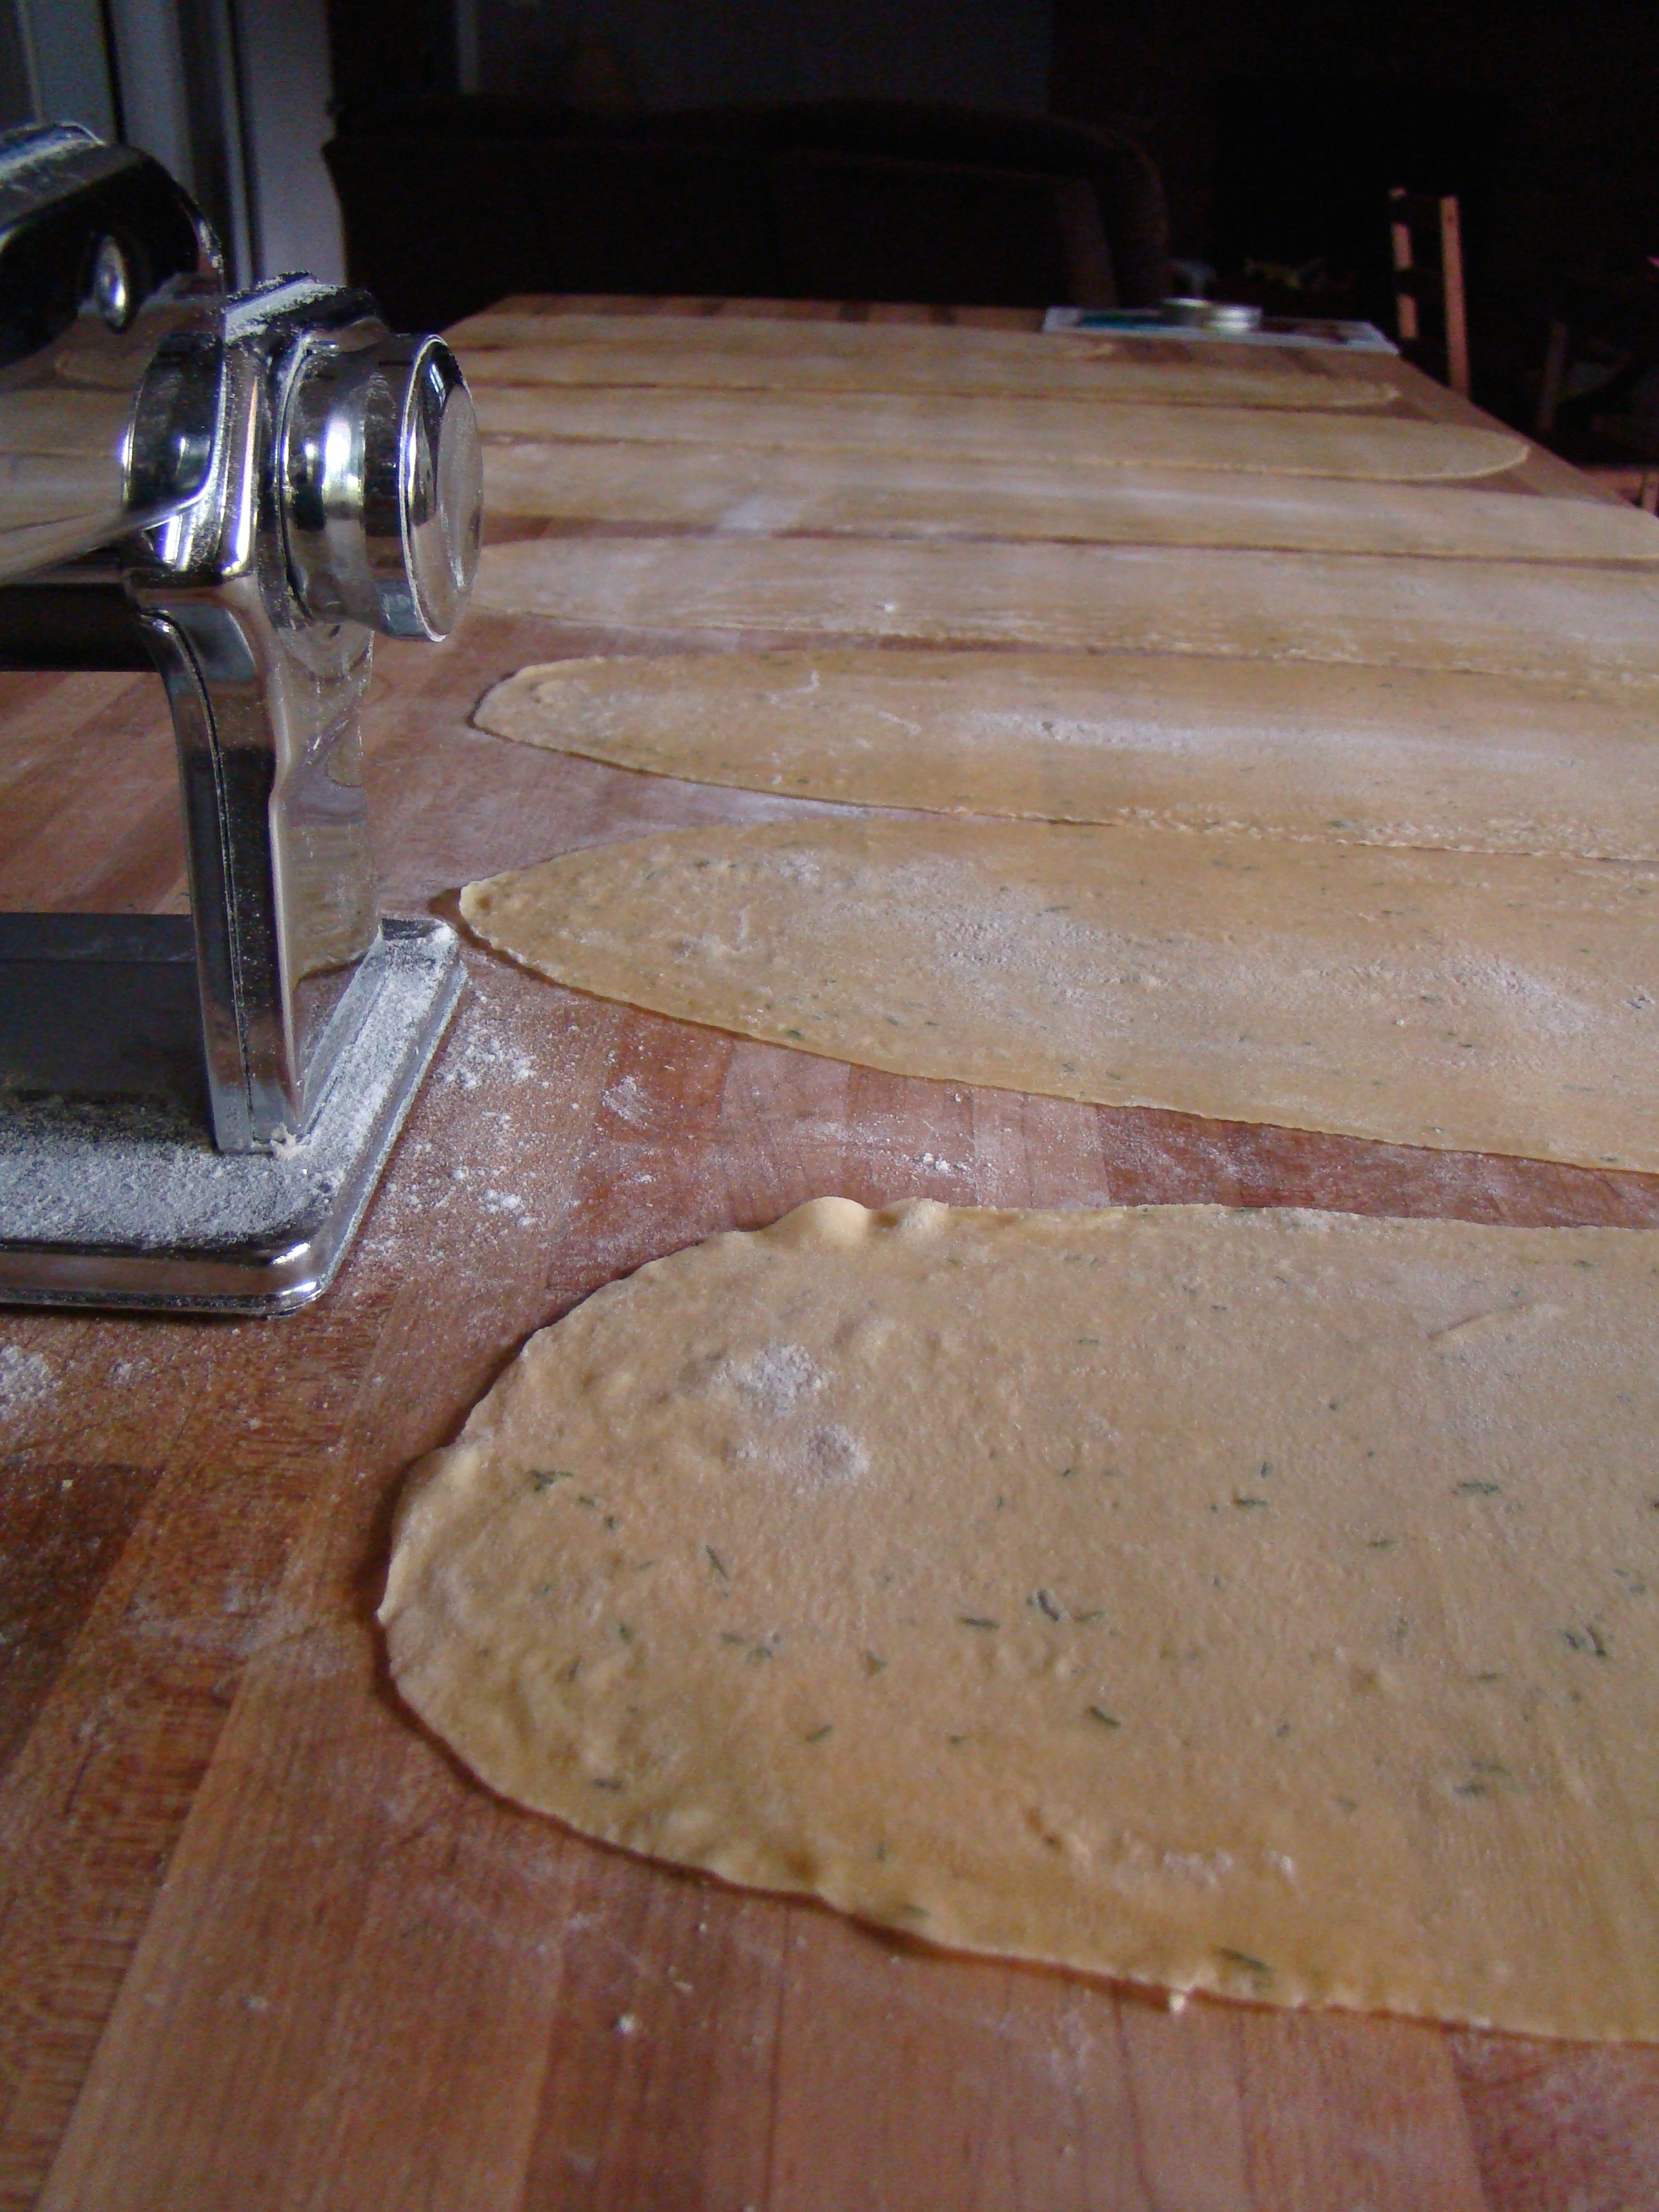 pasta noodles drying